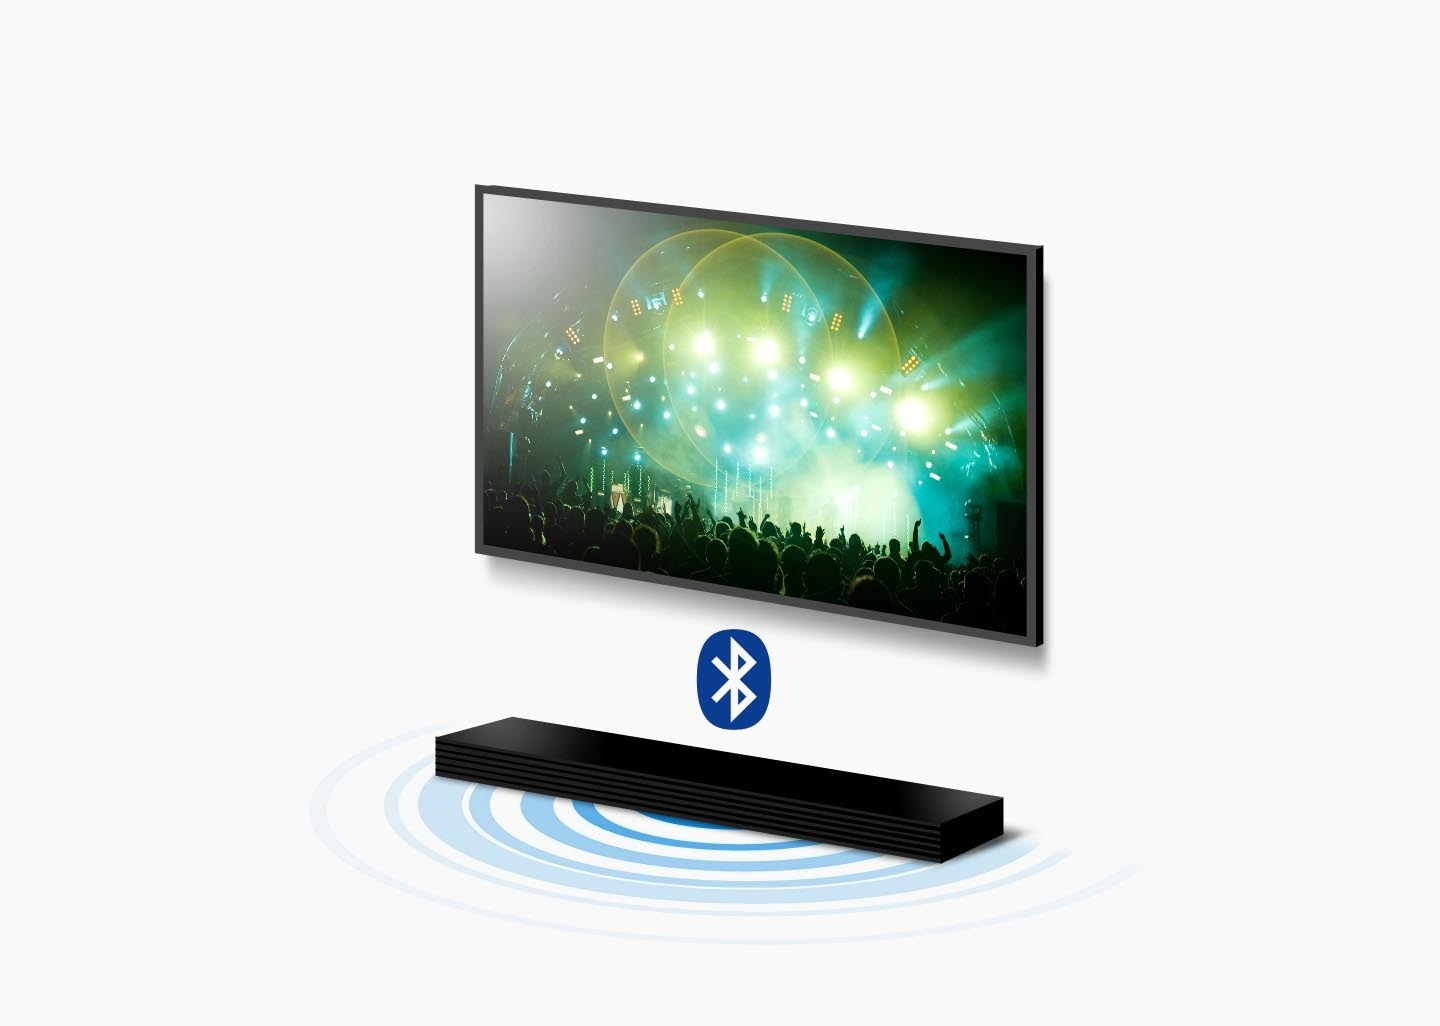 Samsung Sound Bar Manual Hw-j250